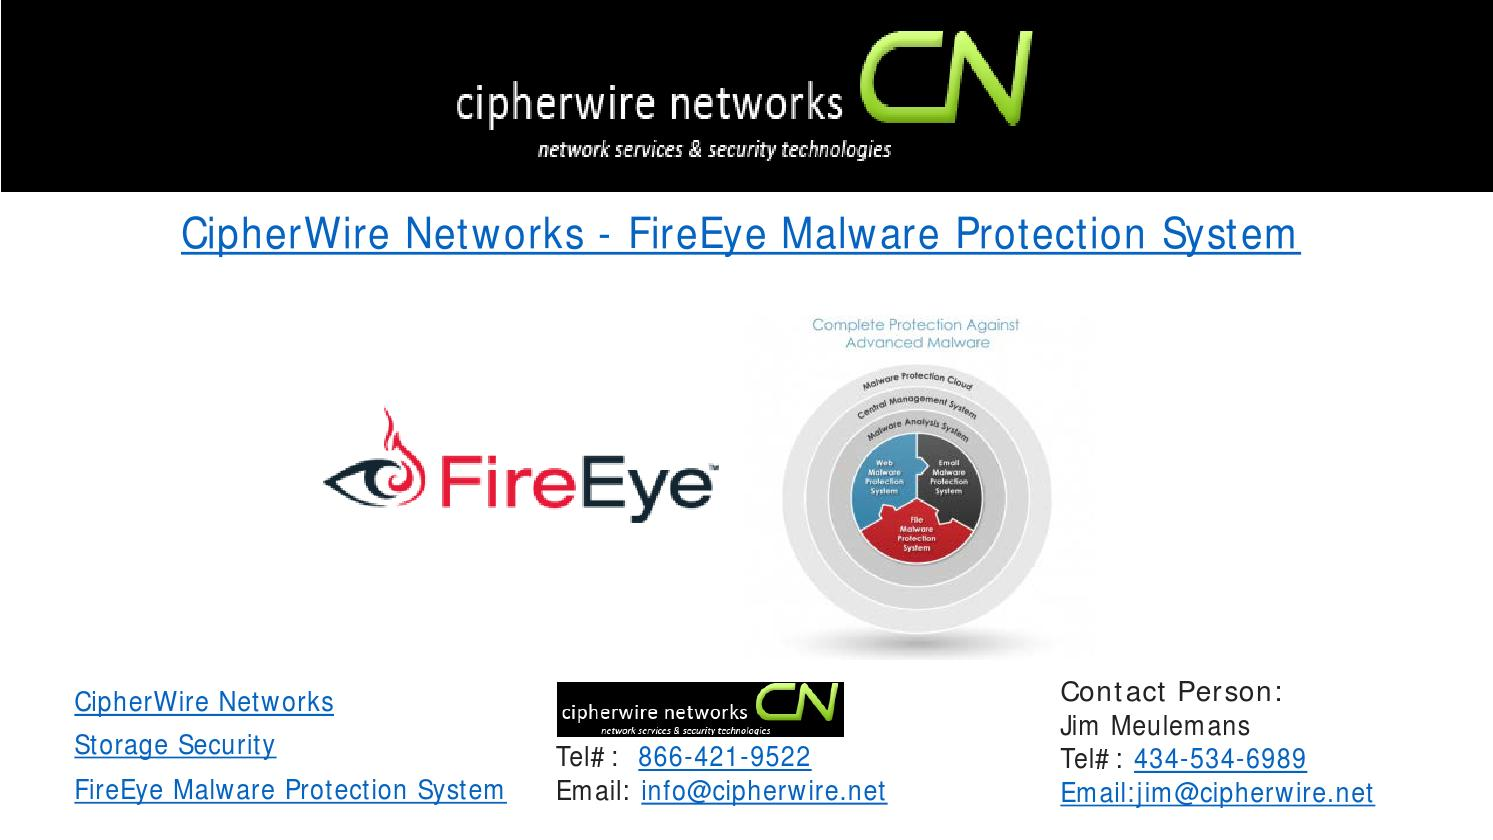 Cipherwire networks fireeye malware protection